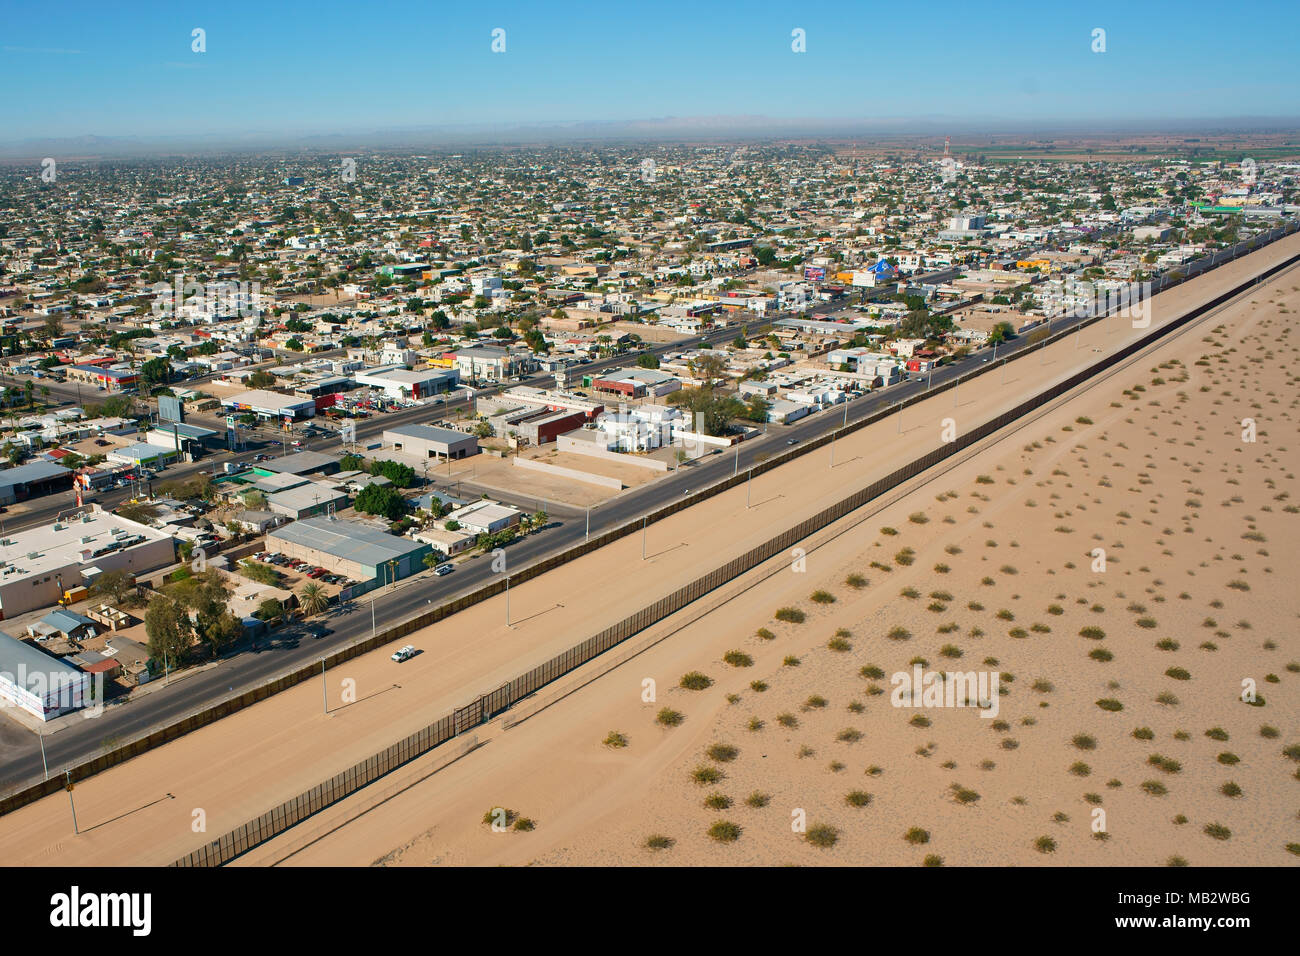 U.S. BORDER AGENT ON PATROL AT THE INTERNATIONAL BORDER OF MEXICO AND THE USA (aerial view). City of San Luis Rio Colorado in Sonora, Mexico. - Stock Image